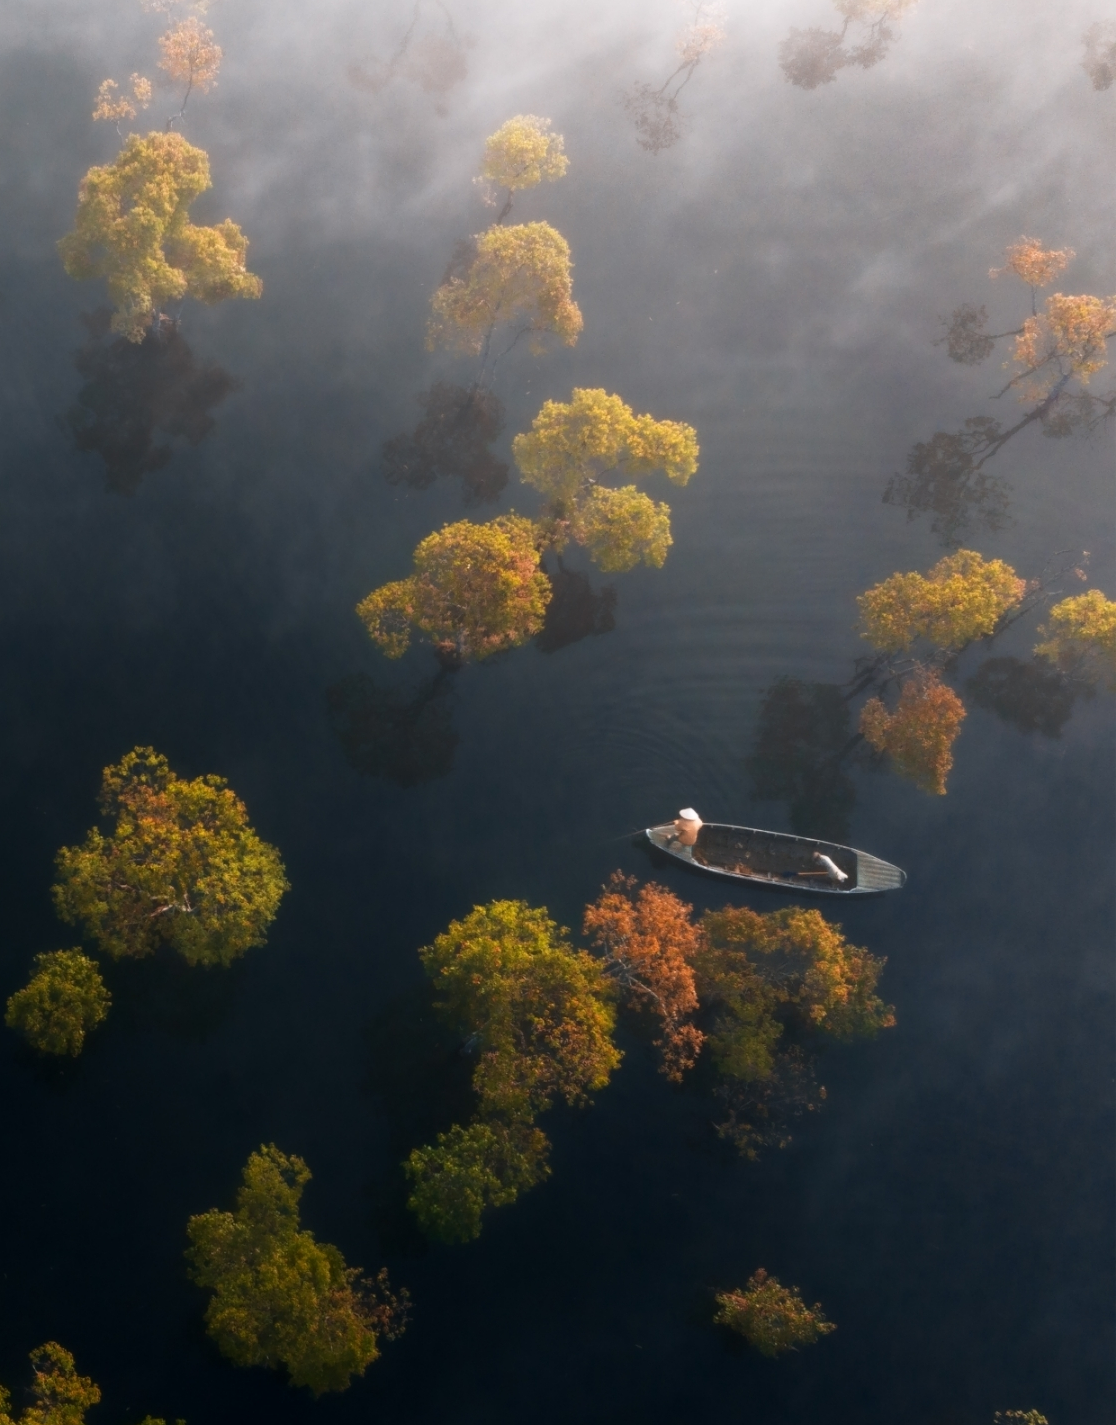 Vietnam's tranquility appears stunning under professional lenses